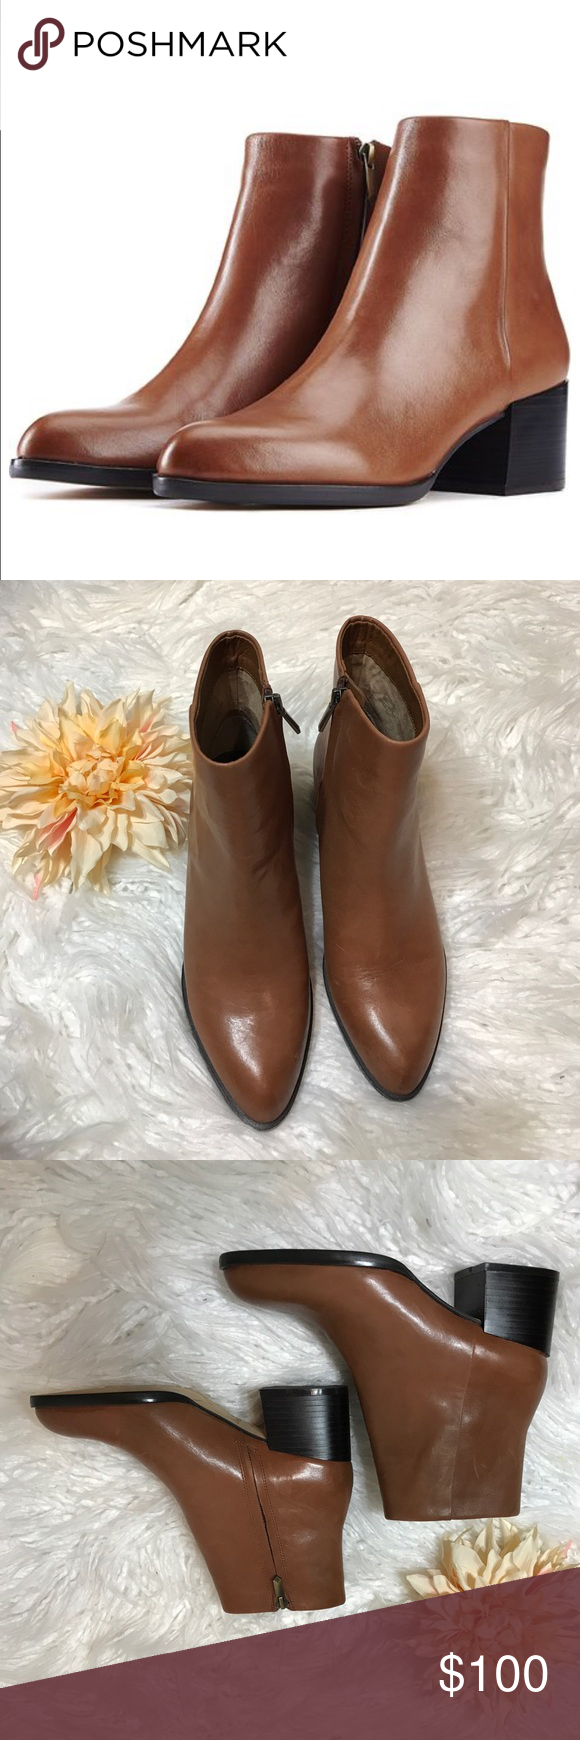 ae20b6dfc8082 Sam Edelman Joey Saddle Heel Boots Sam Edelman for Women  Joey Saddle Heel  Boots - One of our favorite off-duty styles this season